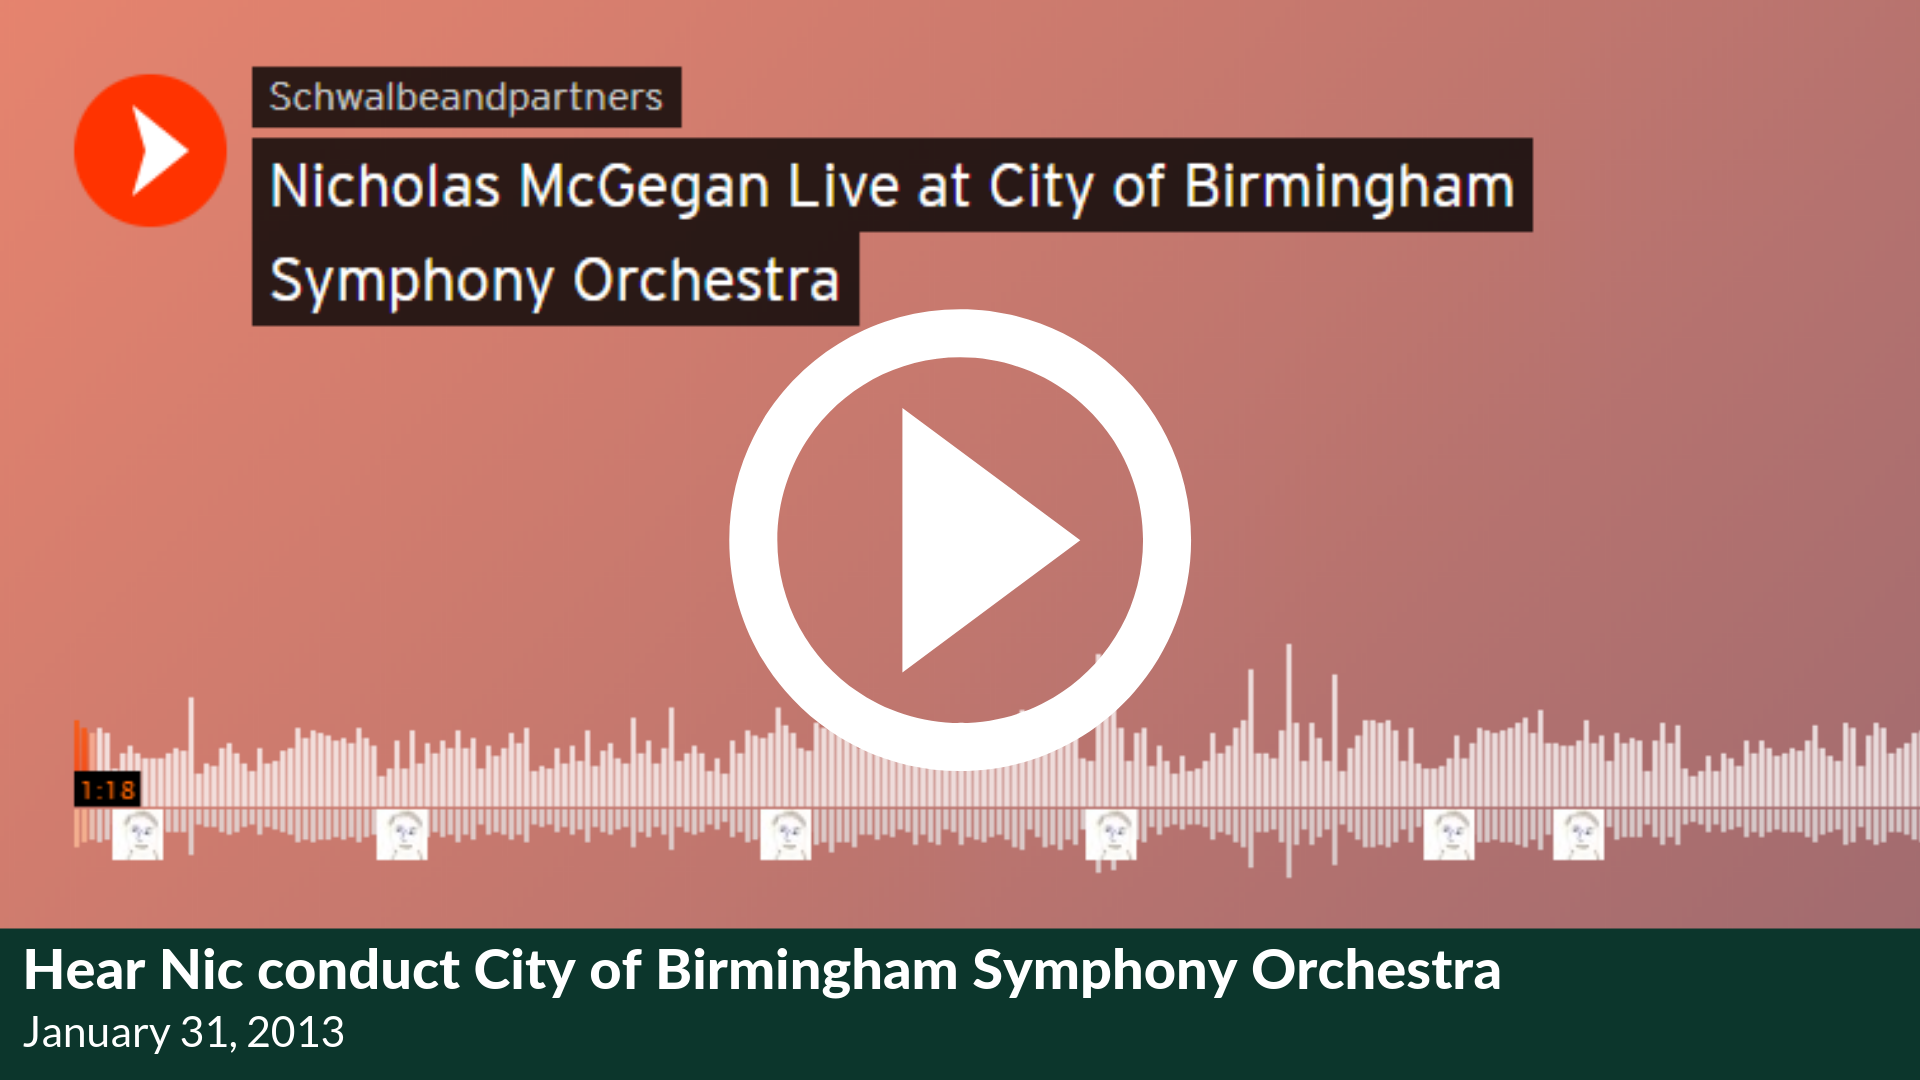 Hear Nic conduct City of Birmingham Symphony Orchestra